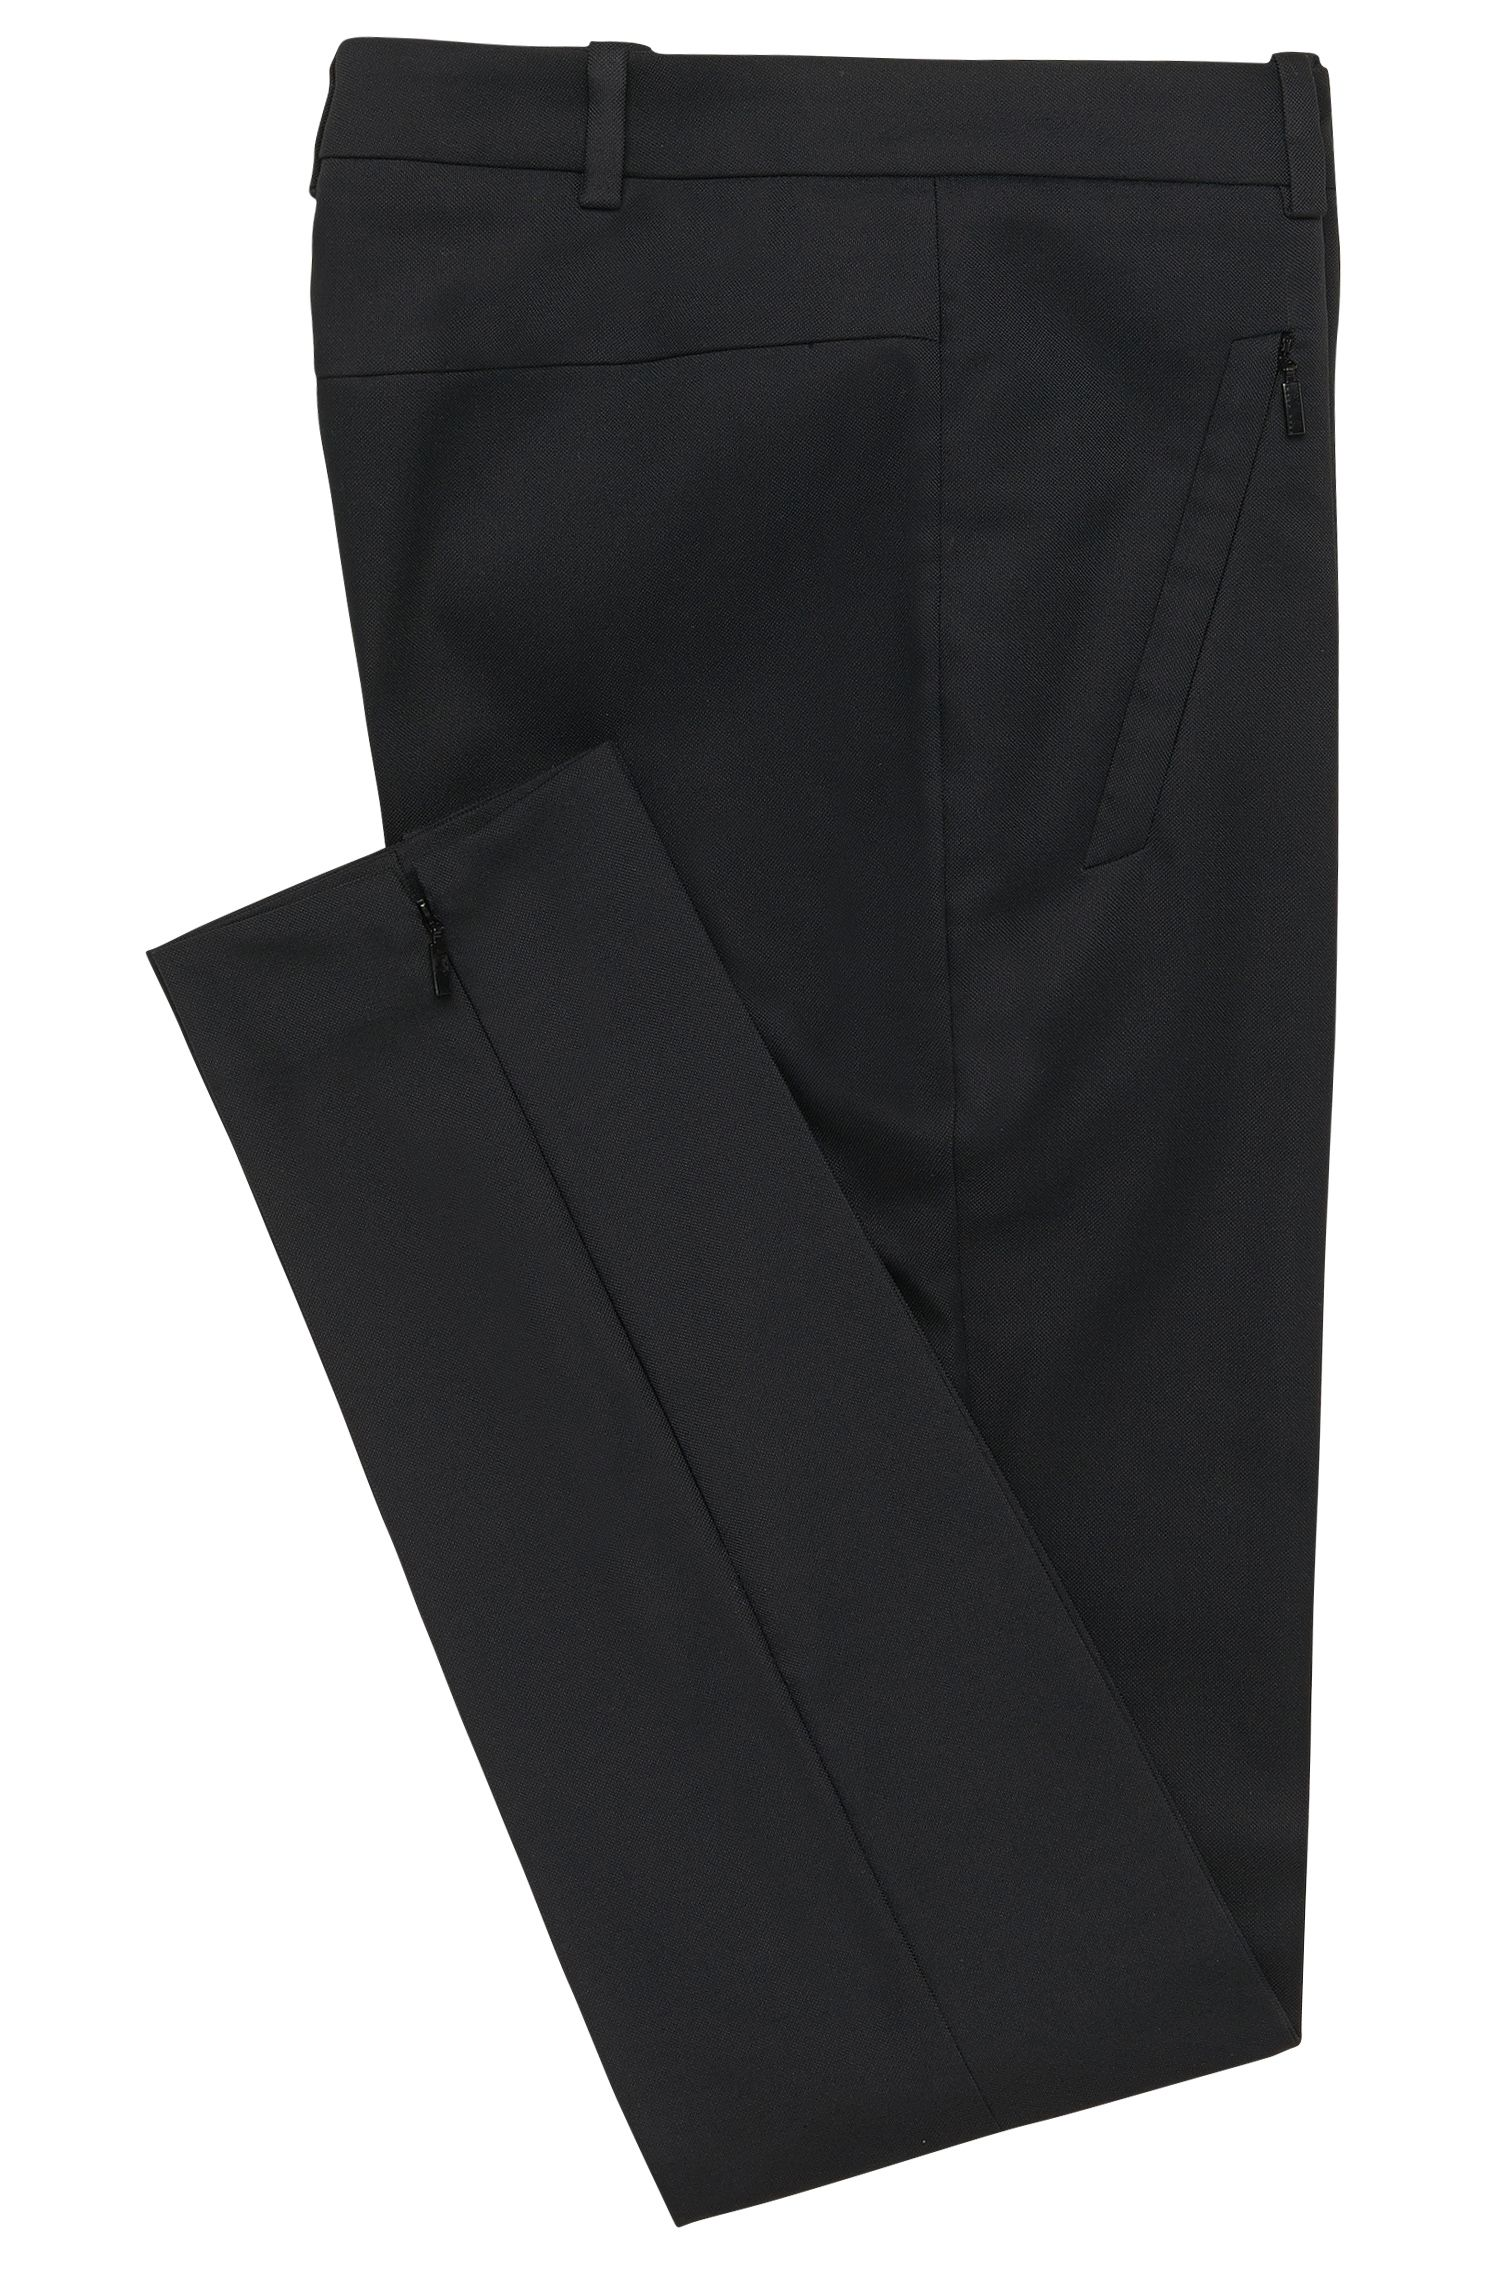 Pantalon Slim Fit en tissu extensible : « Anaita5 »